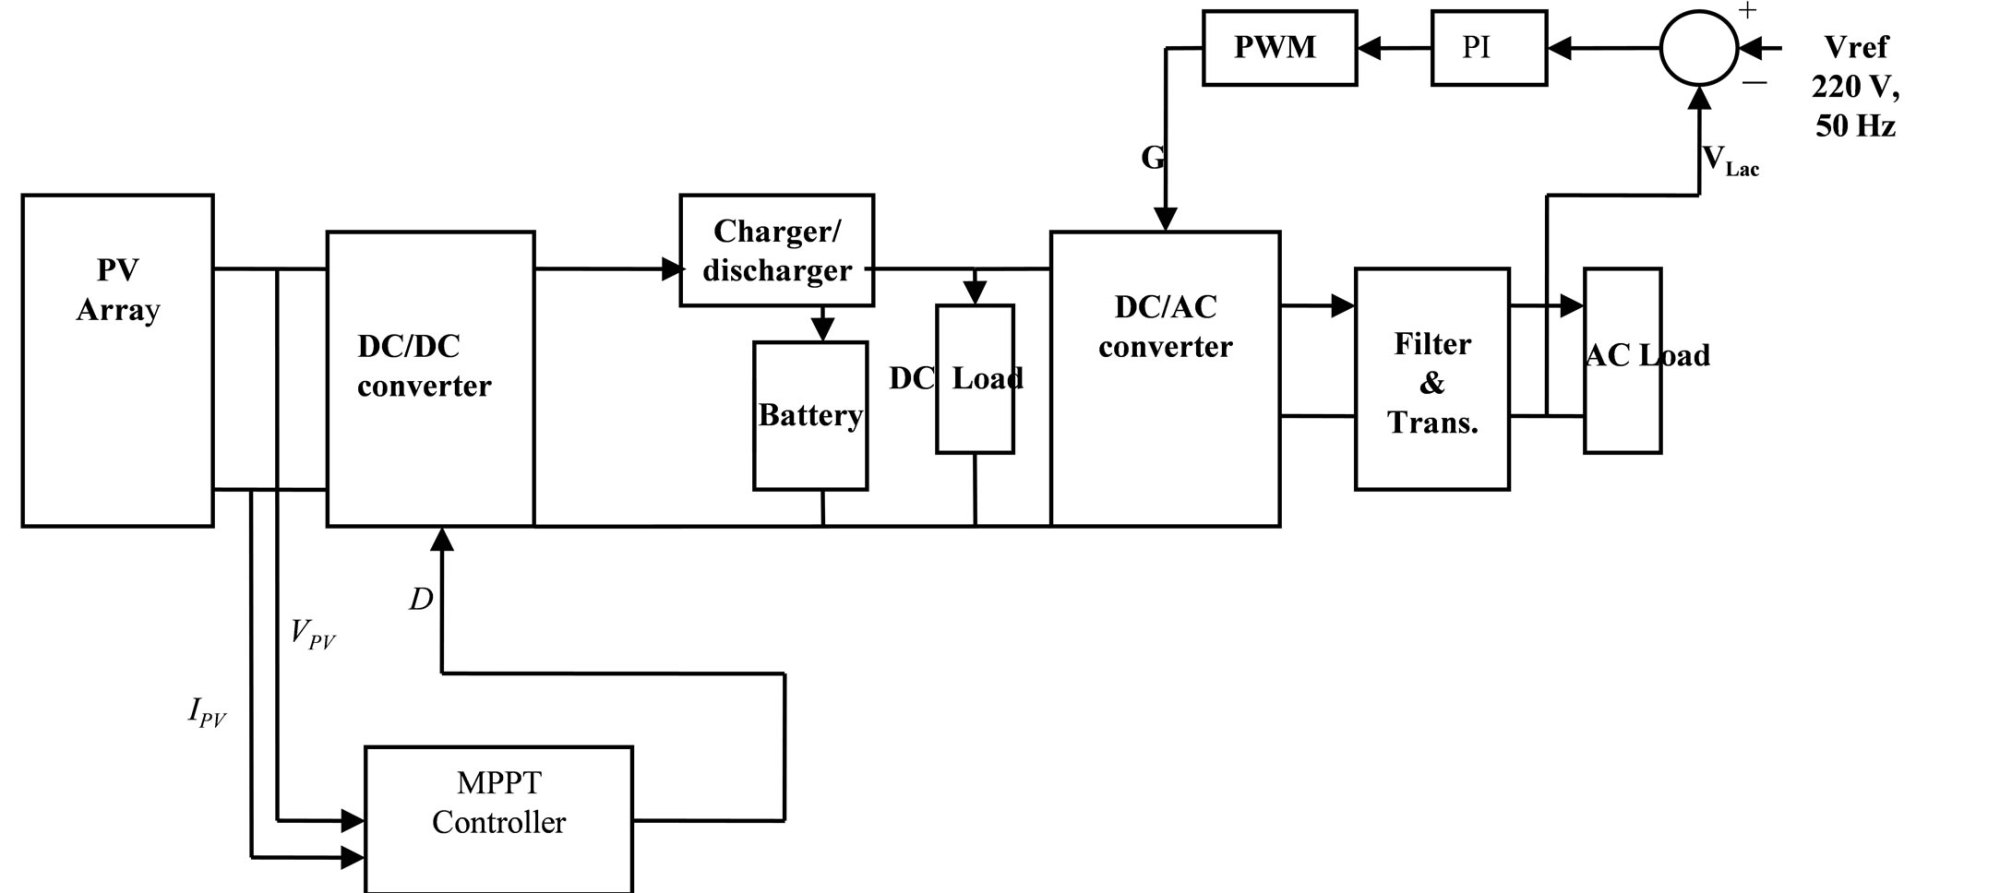 hight resolution of block diagram of stand alone pv system photos